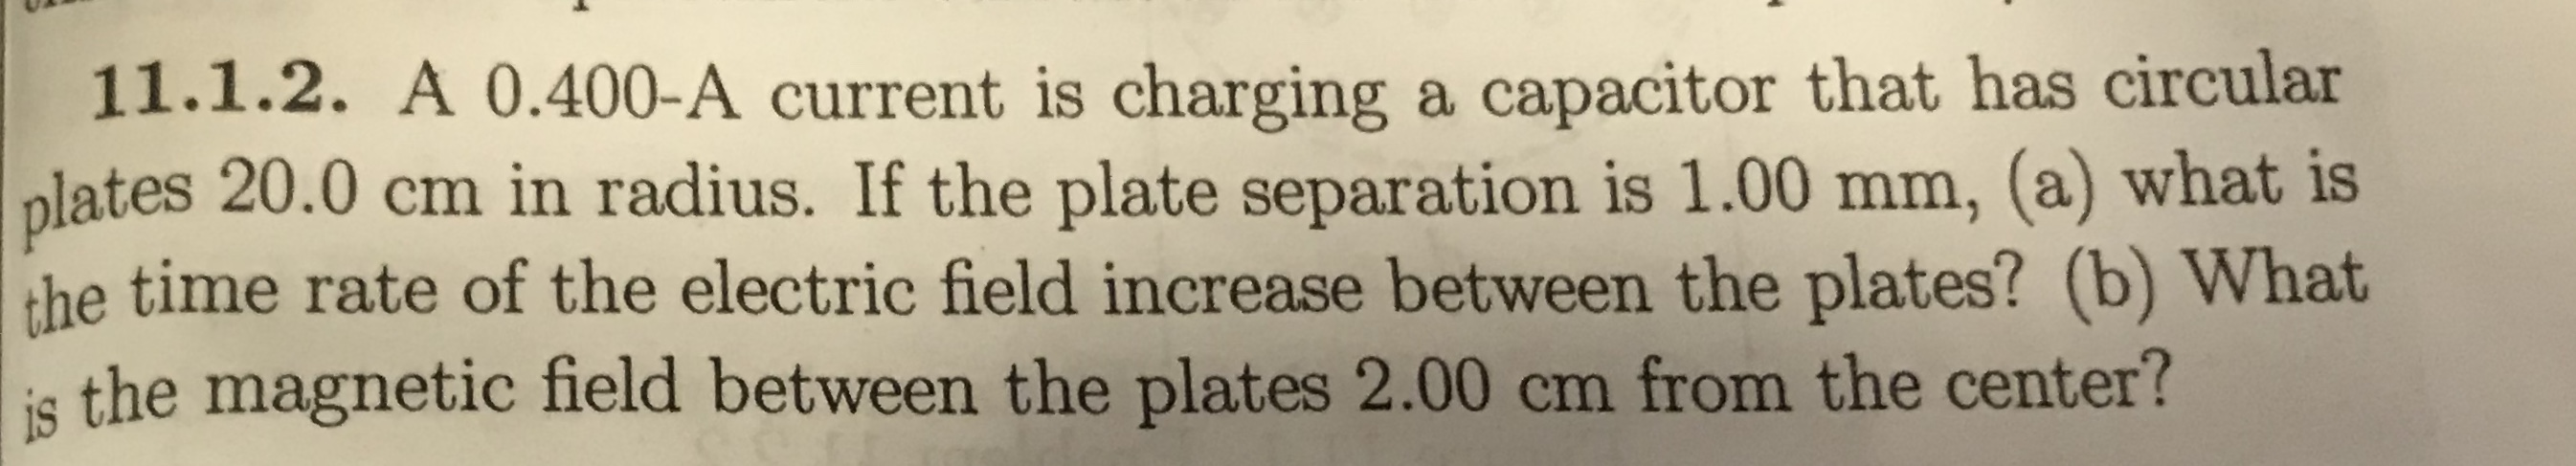 11.1.2. A 0.400-A current is charging a capacitor that has circular plates 20.0 cm in radius. If the plate separation is 1.00 mm, (a) what is the time rate of the electric field increase between the plates? (b) What is the magnetic field between the plates 2.00 cm from the center?